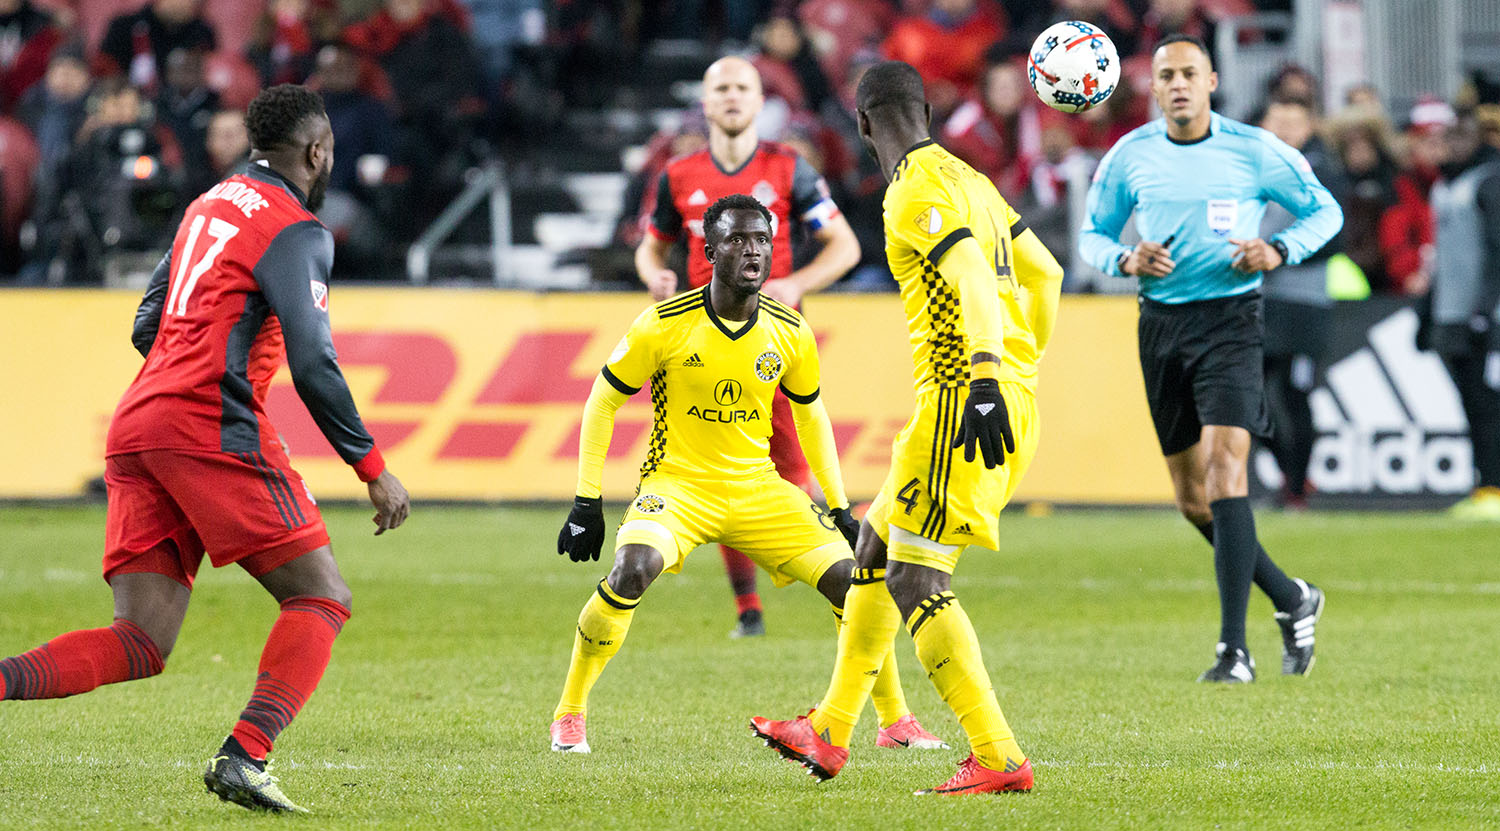 Toronto FC and Columbus crew players looking to get to the ball during a MLS playoff match in 2017.Image by Dennis Marciniak of denMAR Media.